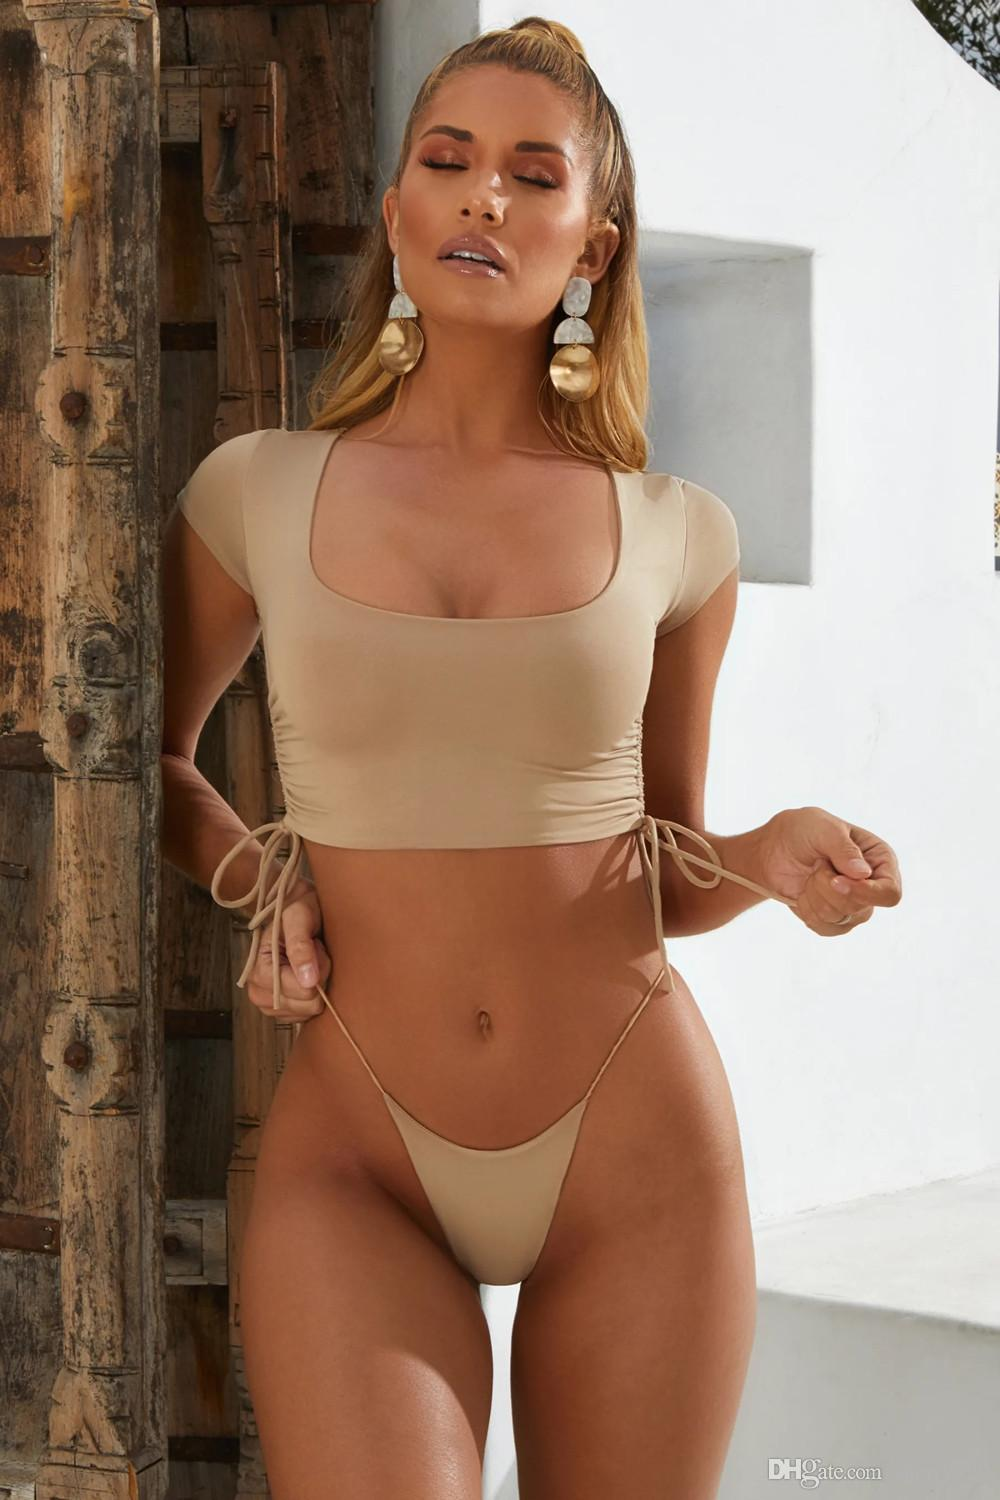 Hot Sexy Women Images